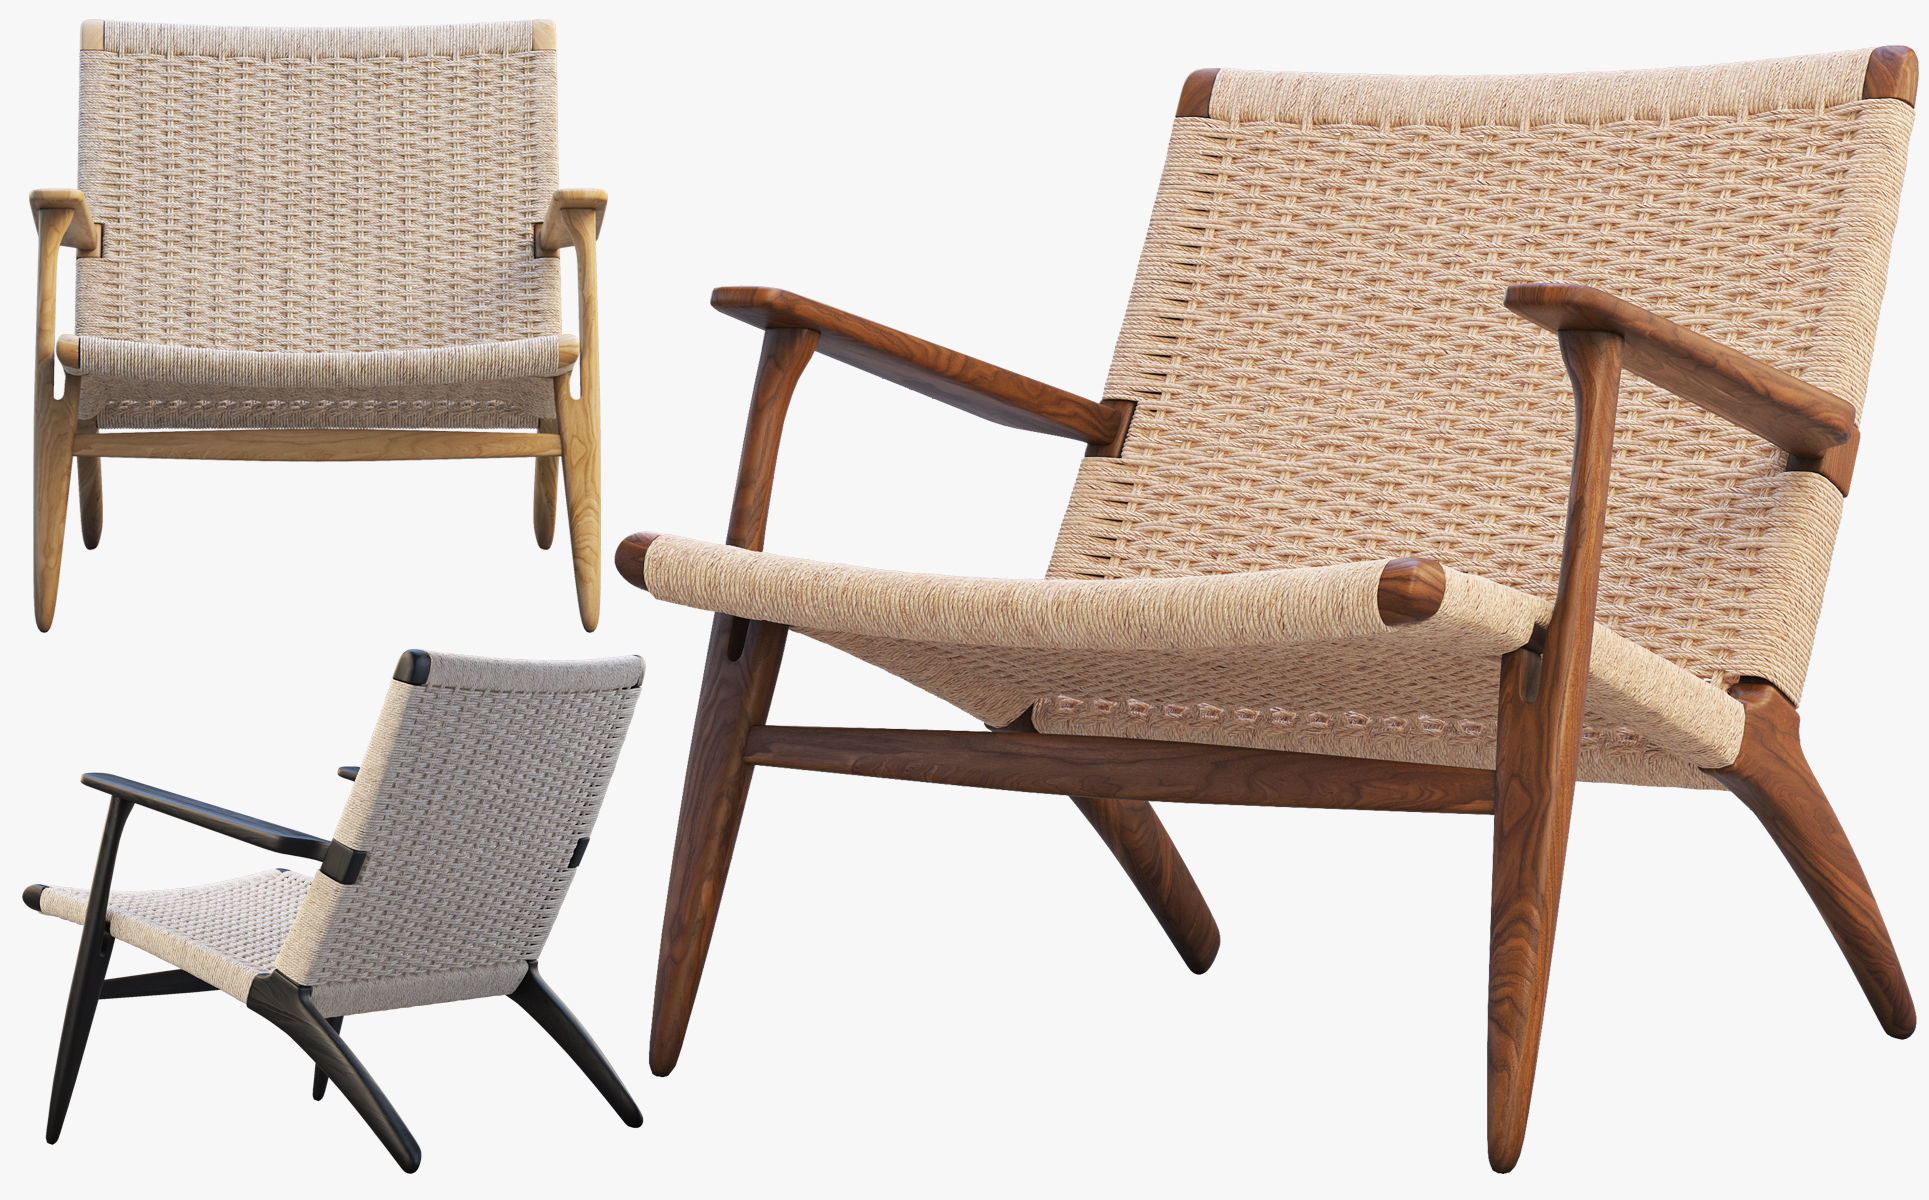 CH25 Lounge Chair 4 options